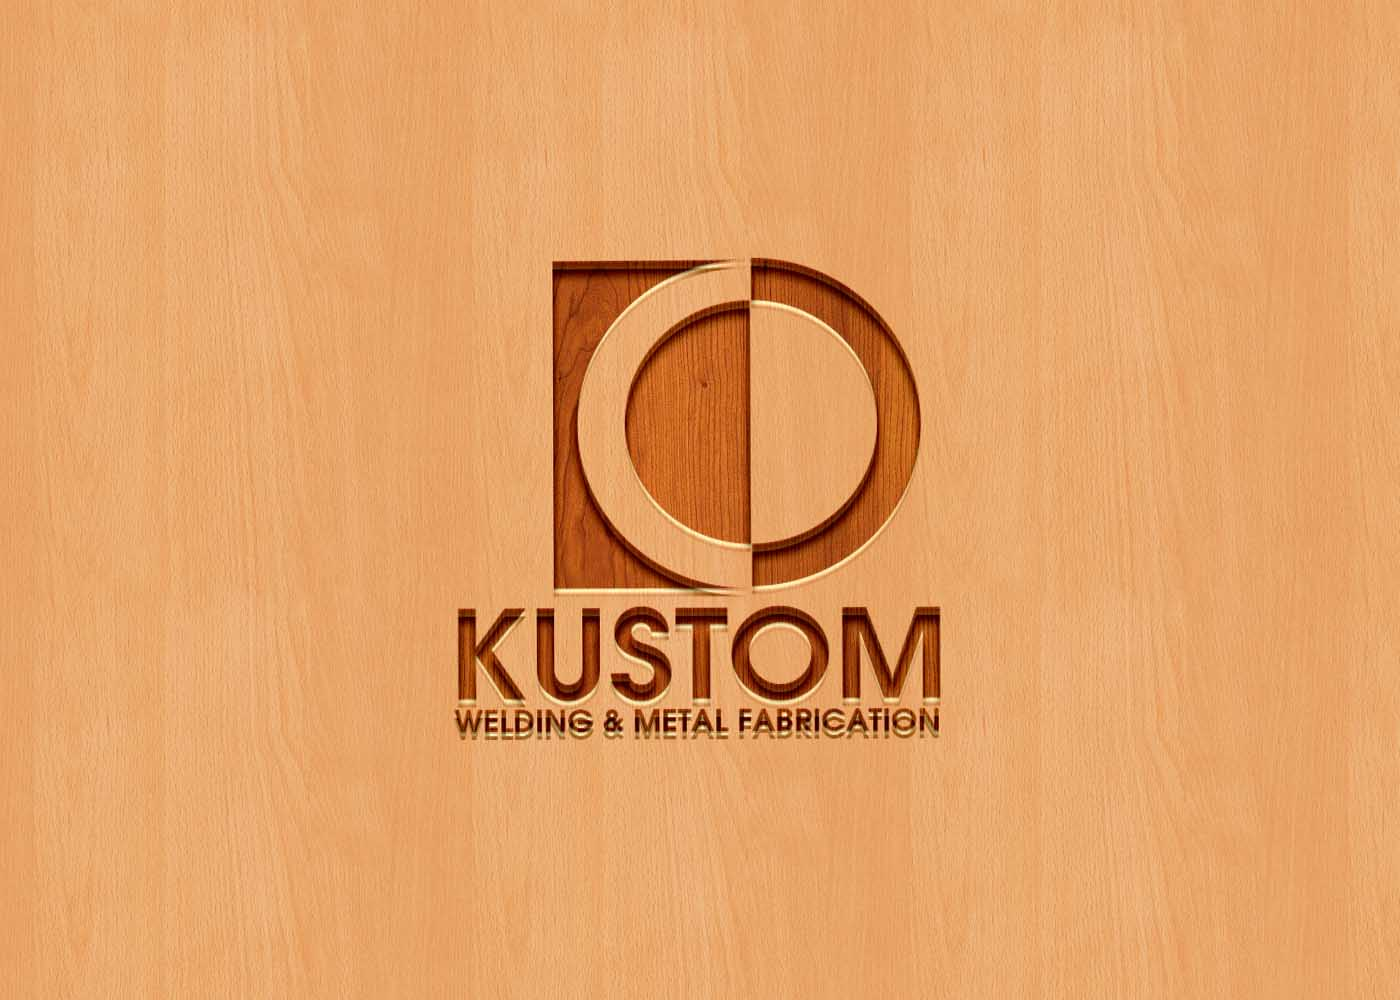 Logo Design by Private User - Entry No. 114 in the Logo Design Contest Imaginative Logo Design for DC KUSTOM WELDING & METAL FABRICATION.